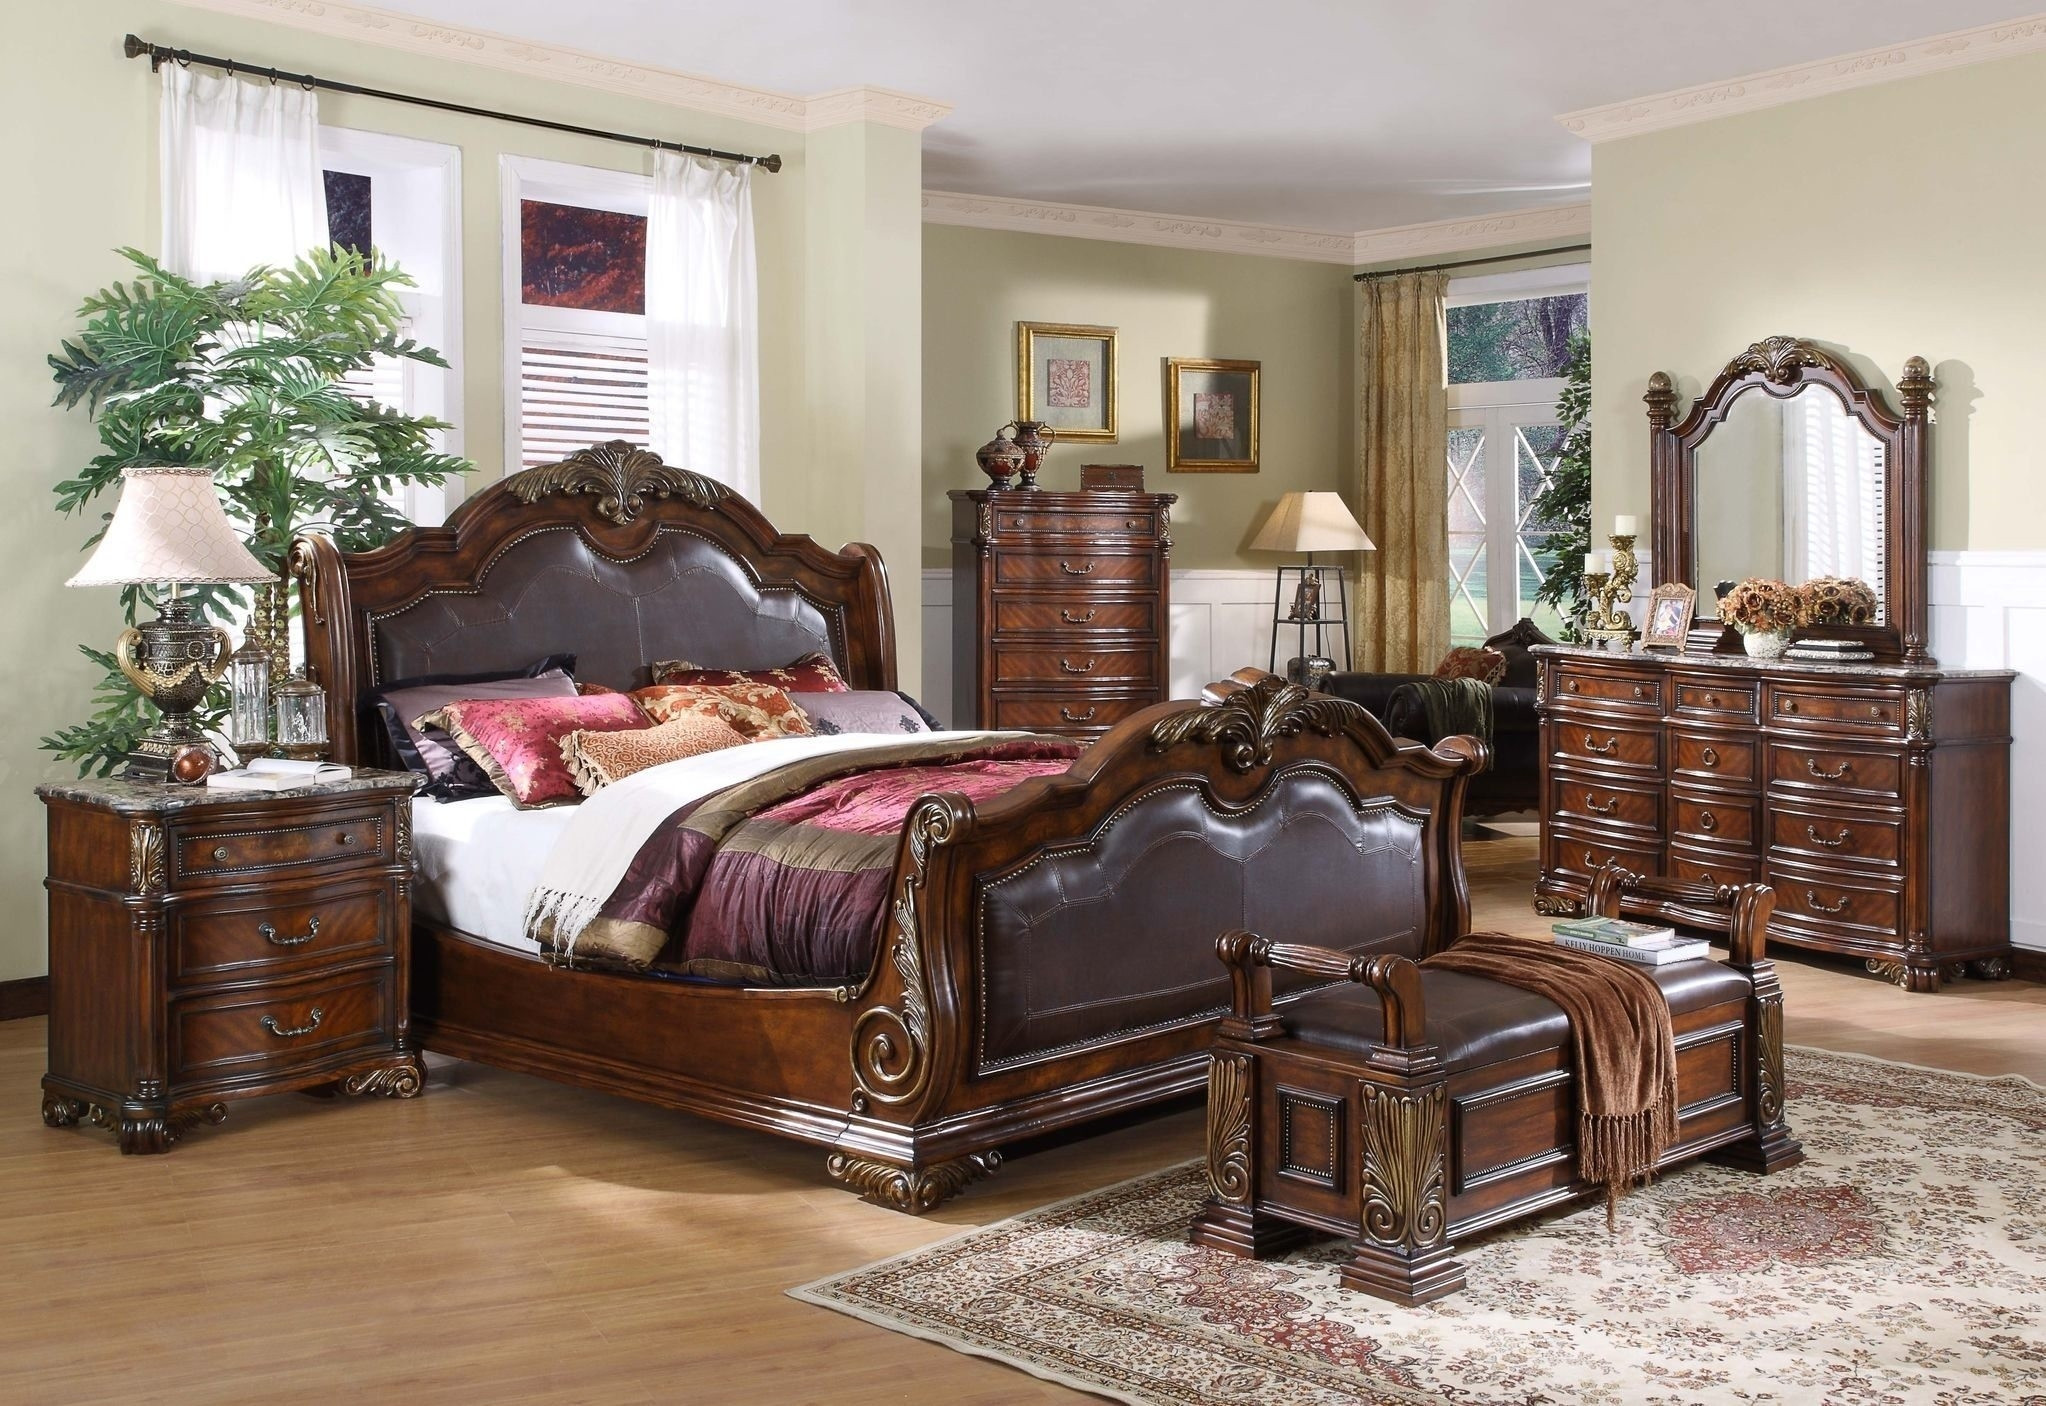 Best ideas about Wayfair Bedroom Sets . Save or Pin Wayfair Furniture Clearance Now.